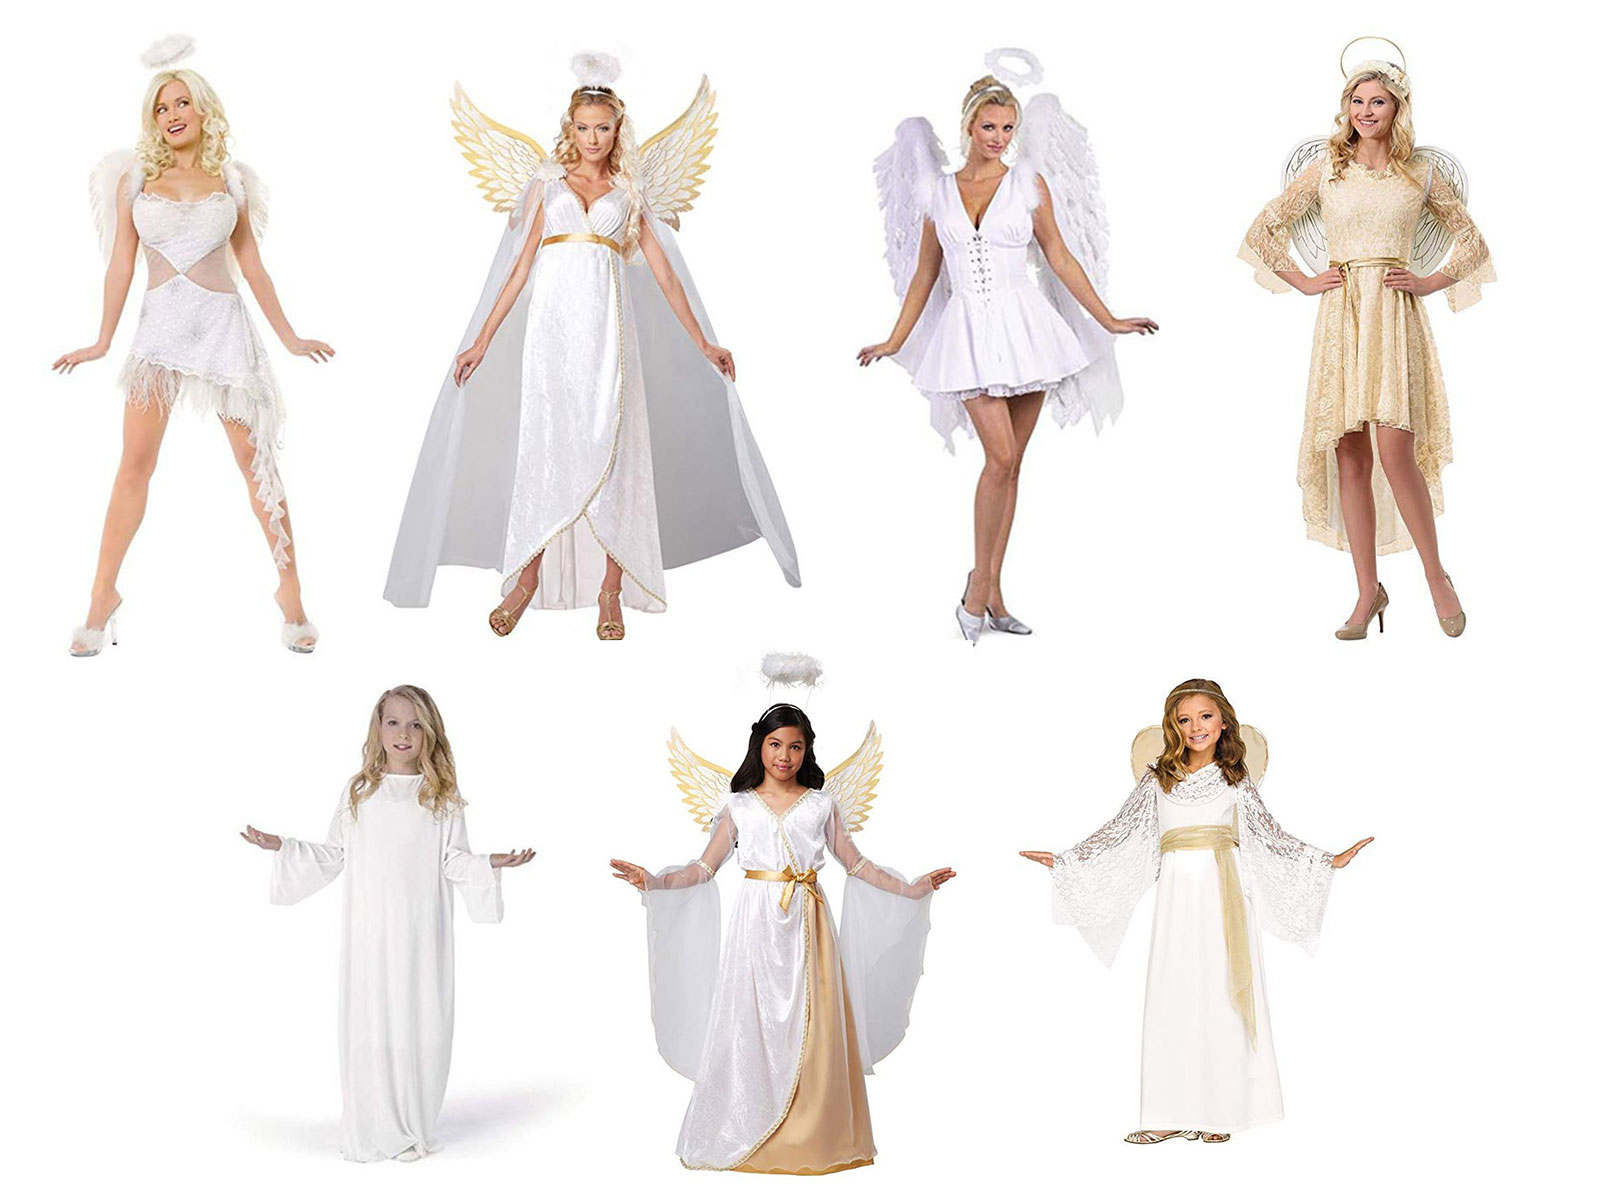 20-Halloween-Angel-Costume-Ideas-For-Kids-Girls-Women-2019-F